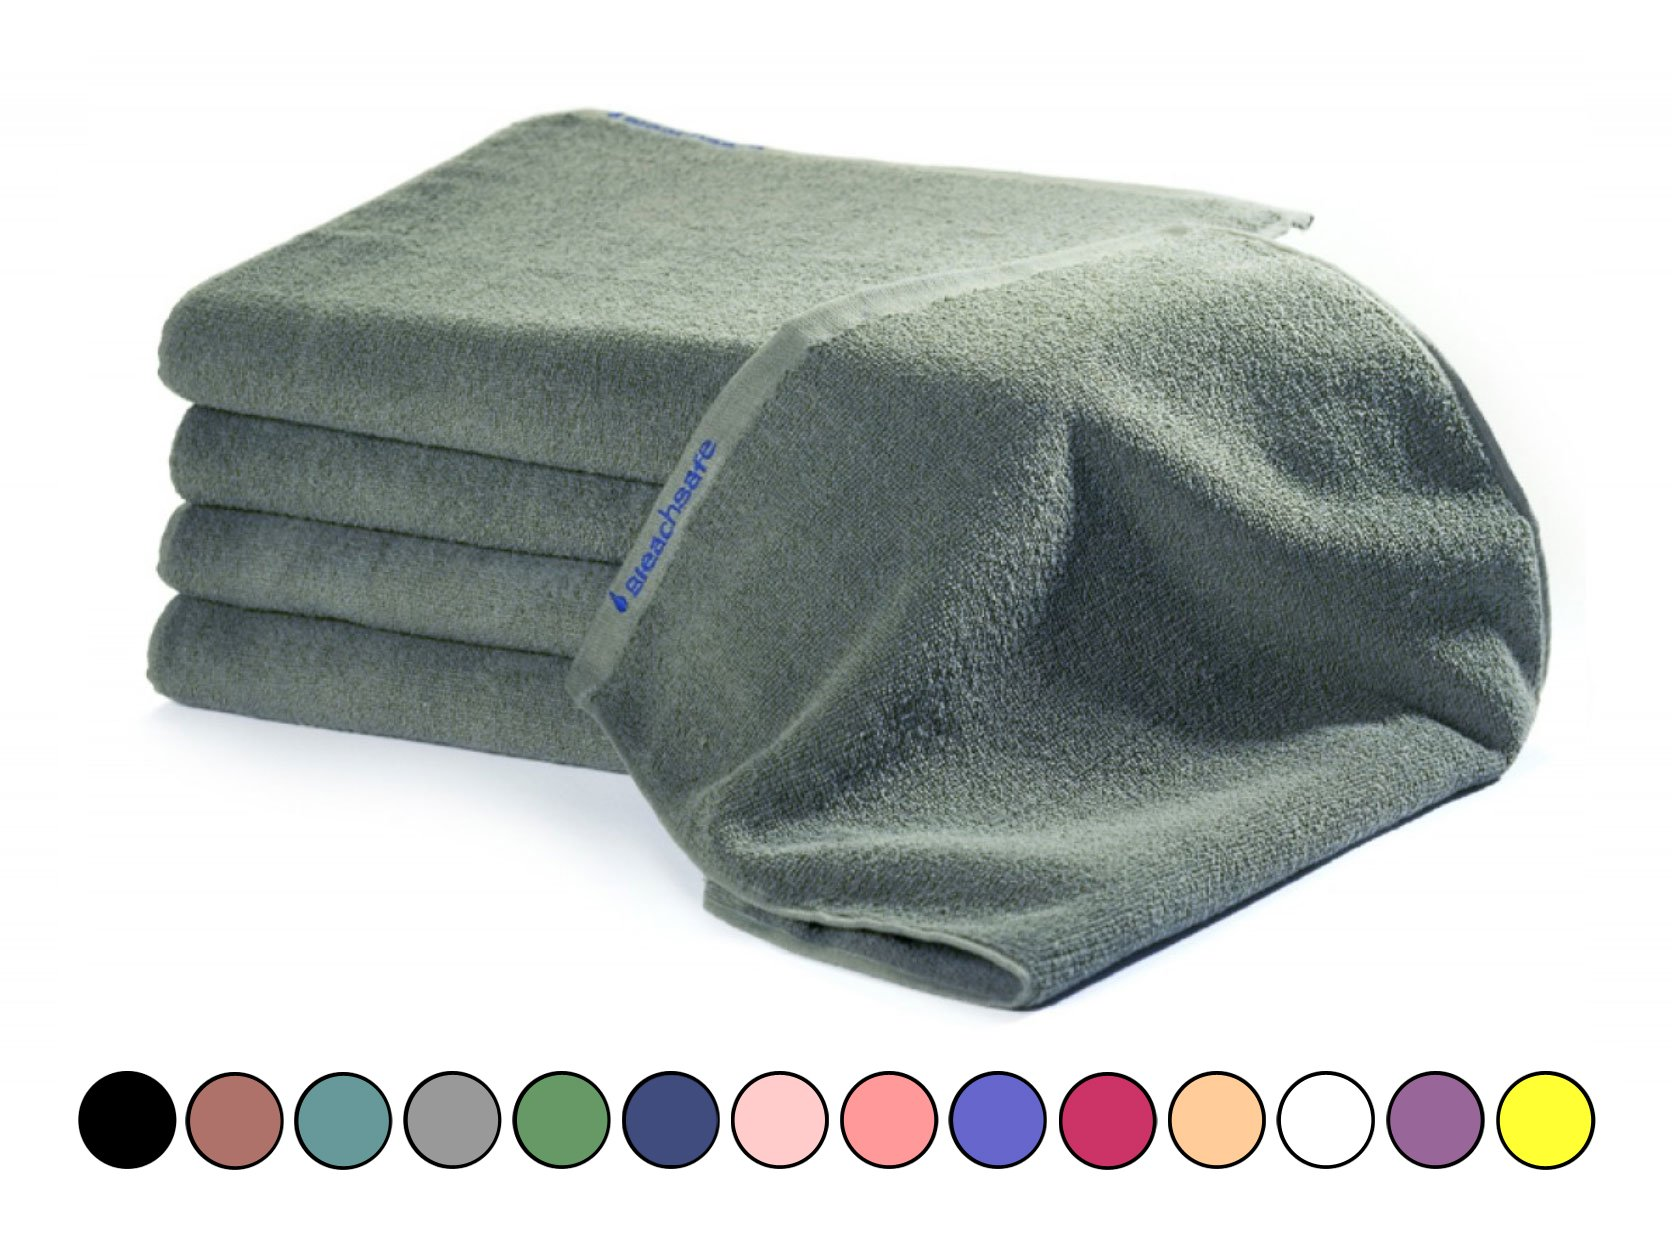 BLEACHSAFE Soft Cotton Towel Set: 15 In x 26 In Thick, Absorbent Bleachproof Towels for Salon, Gym, Spa or Restaurant - Pack of 24, Mosstone